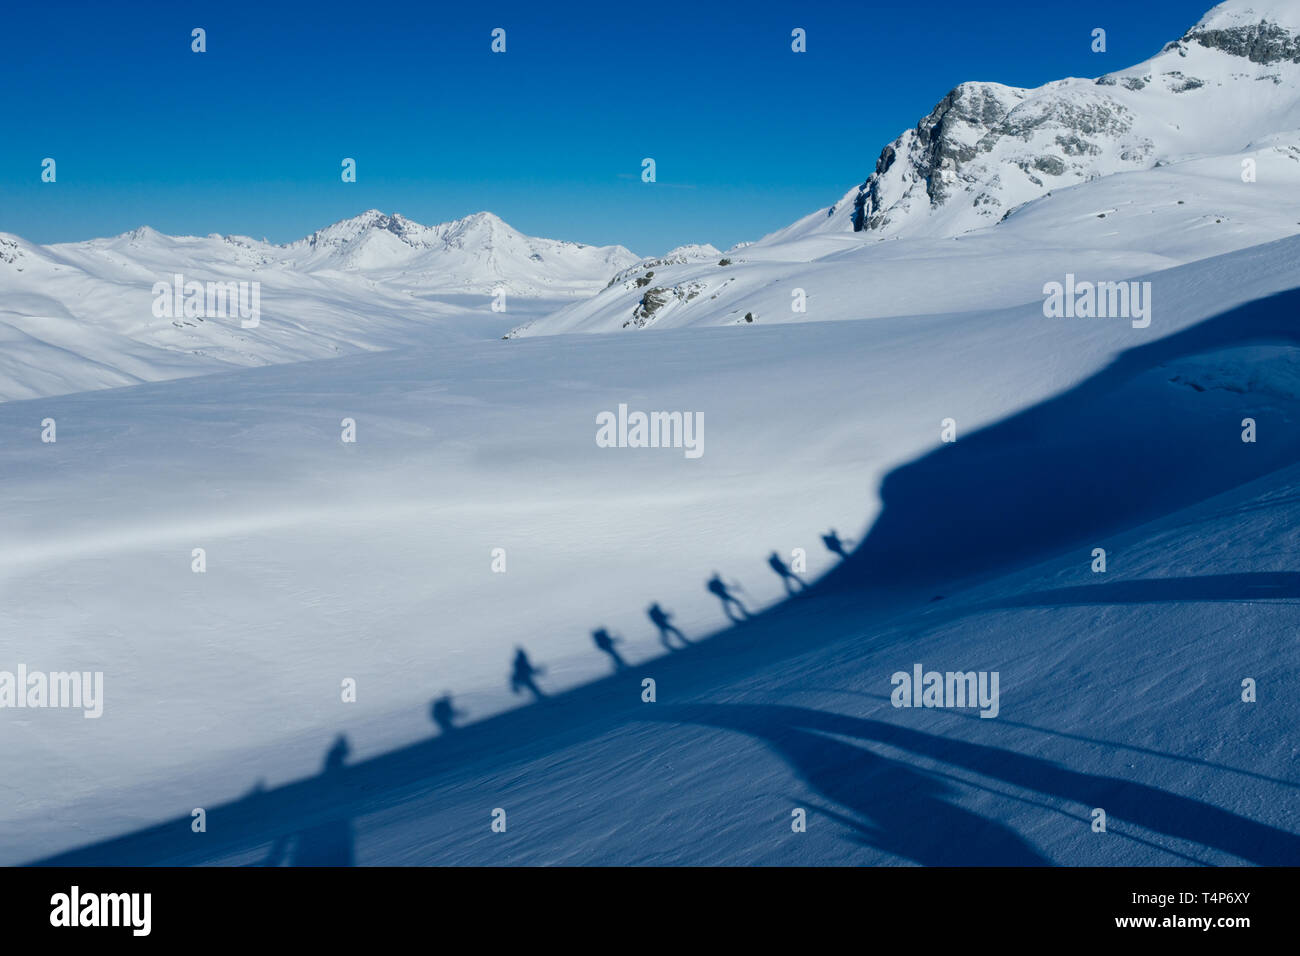 Shadows of tour skiers in Switzerland - Stock Image